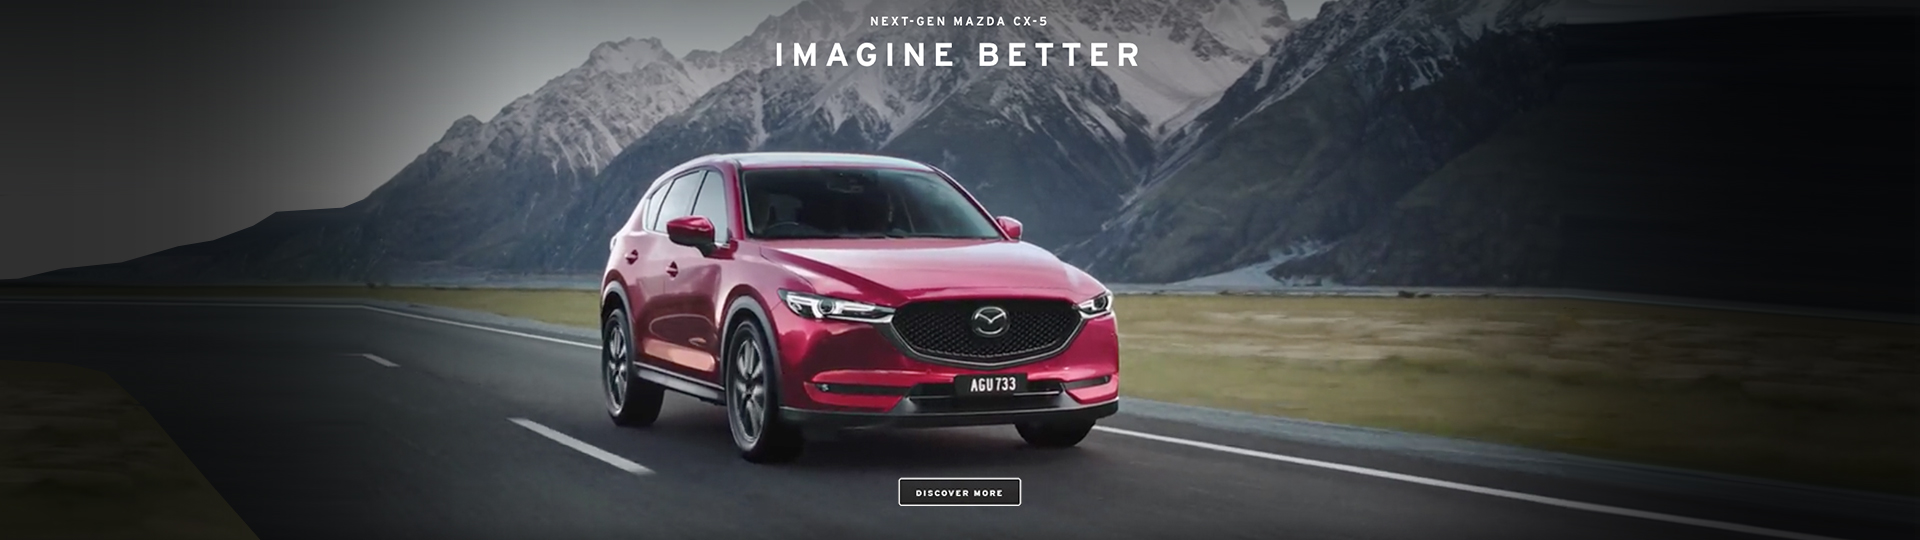 Next-Gen Mazda CX-5 hunter valley